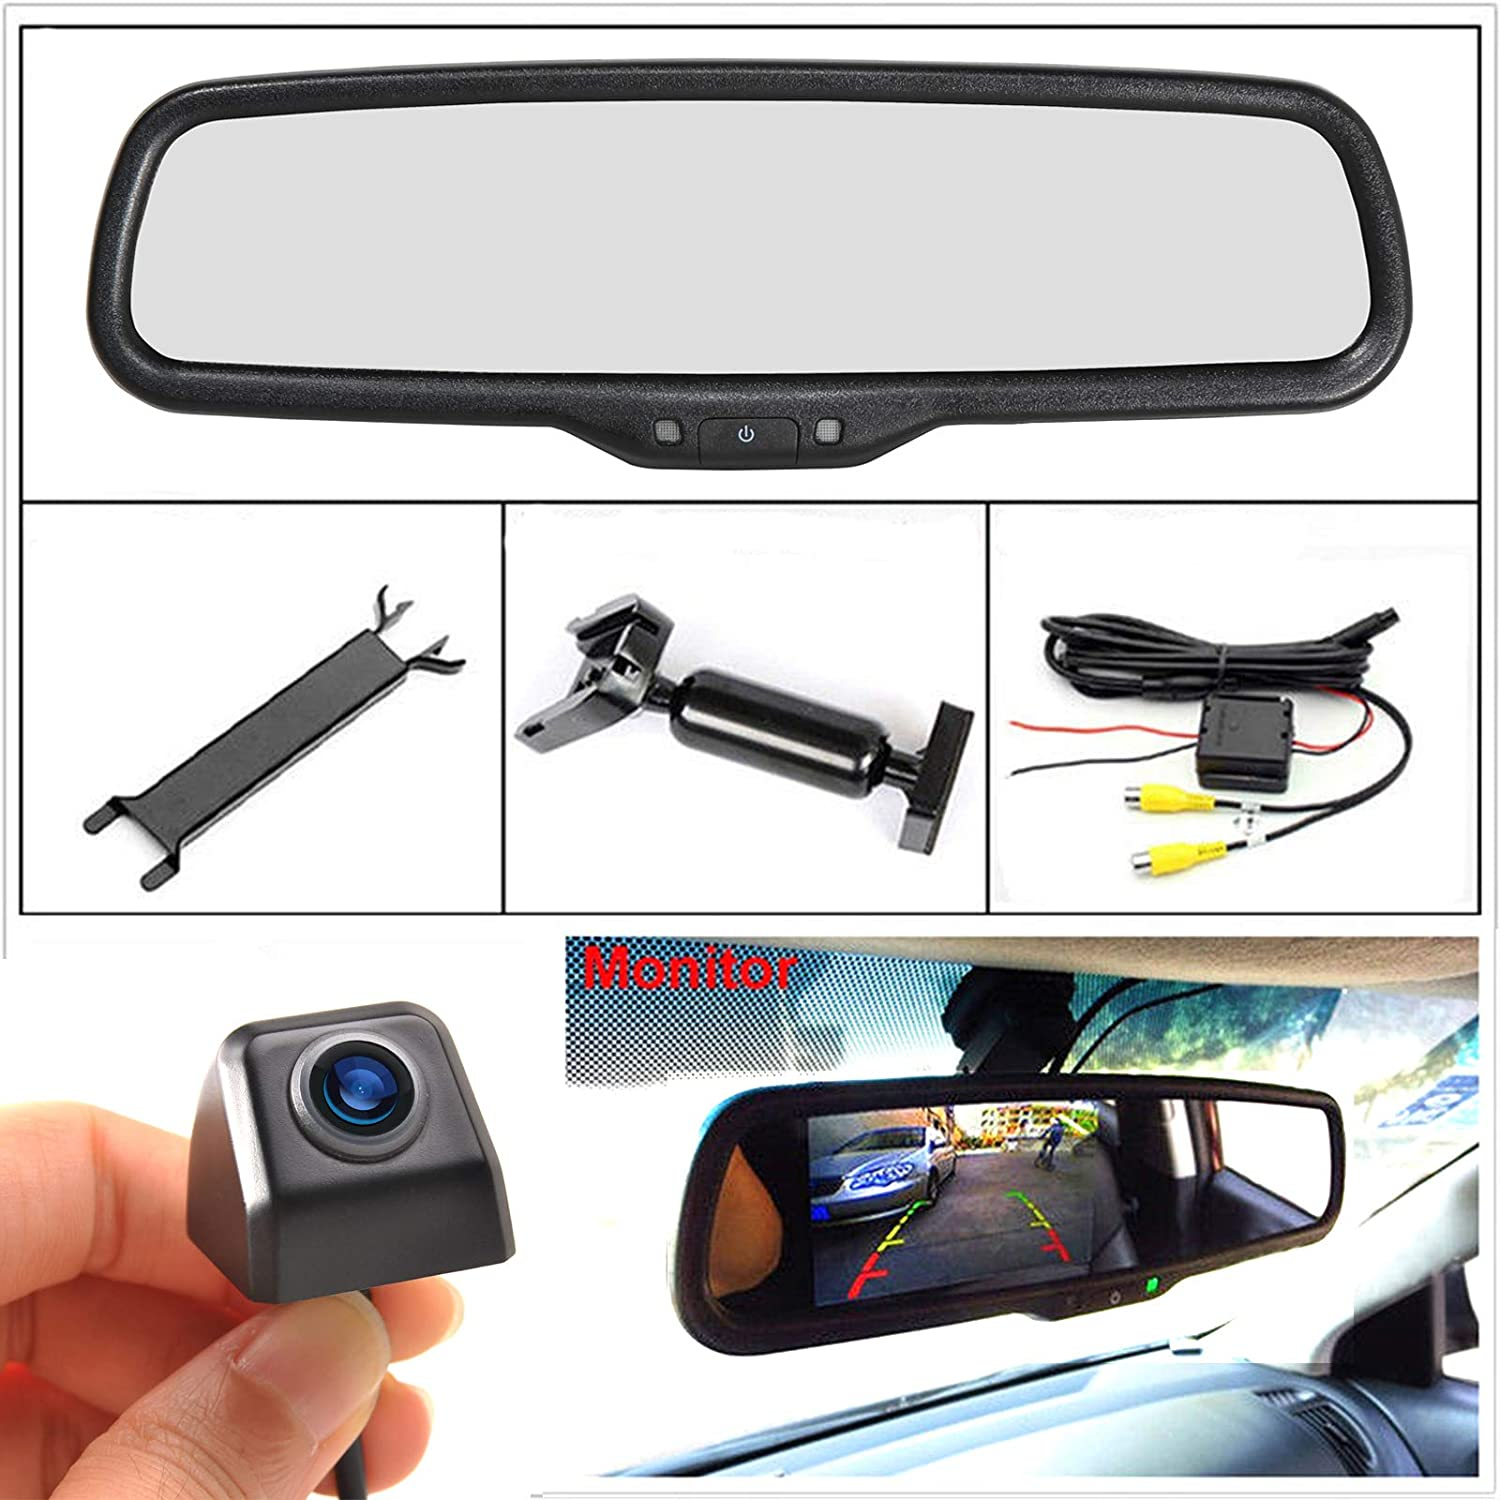 Eway Mini Universal Backup Camera /& 4.3 Rear View Mirror Monitor Kit Waterproof Night Vision 170/°Angle for Car RV Pickup Truck Trailer Van for Ford F150 2004-2014 F250//350 2008-2015 Lux